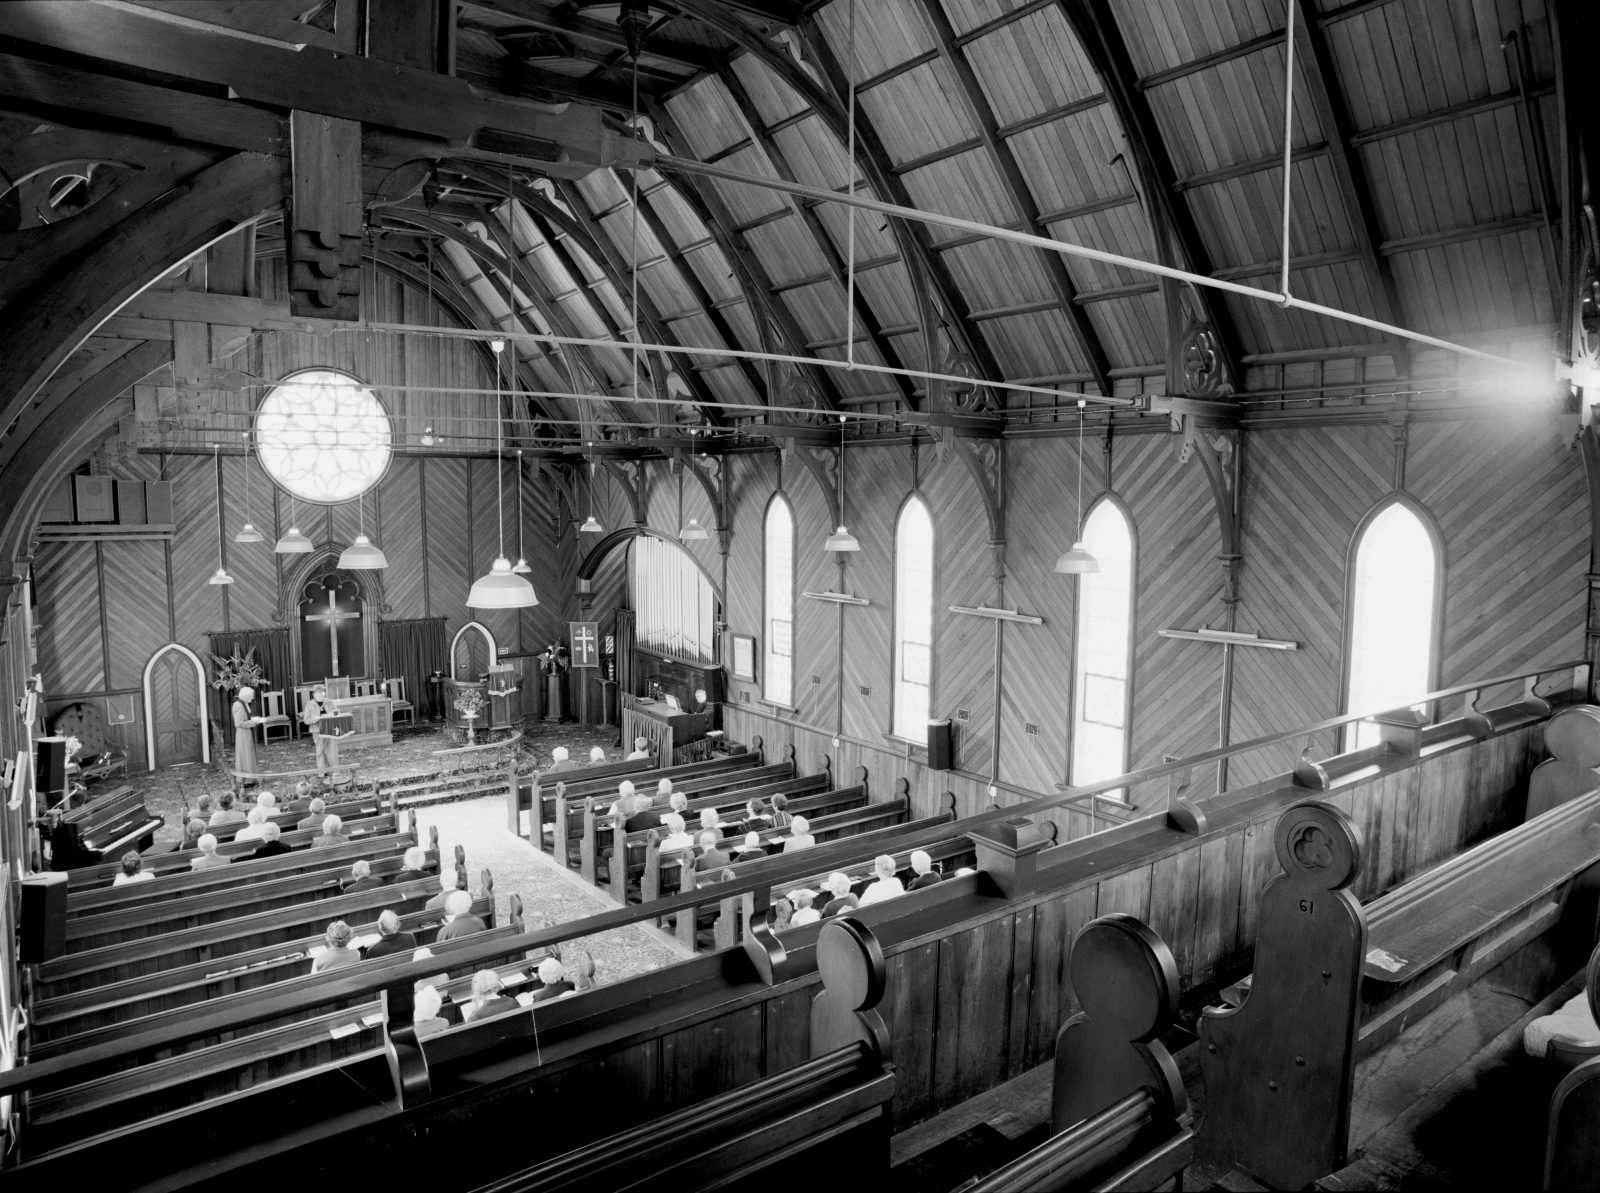 A combined Methodist-Presbyterian congregation celebrate together within the kauri walls of Saint James Union Church.